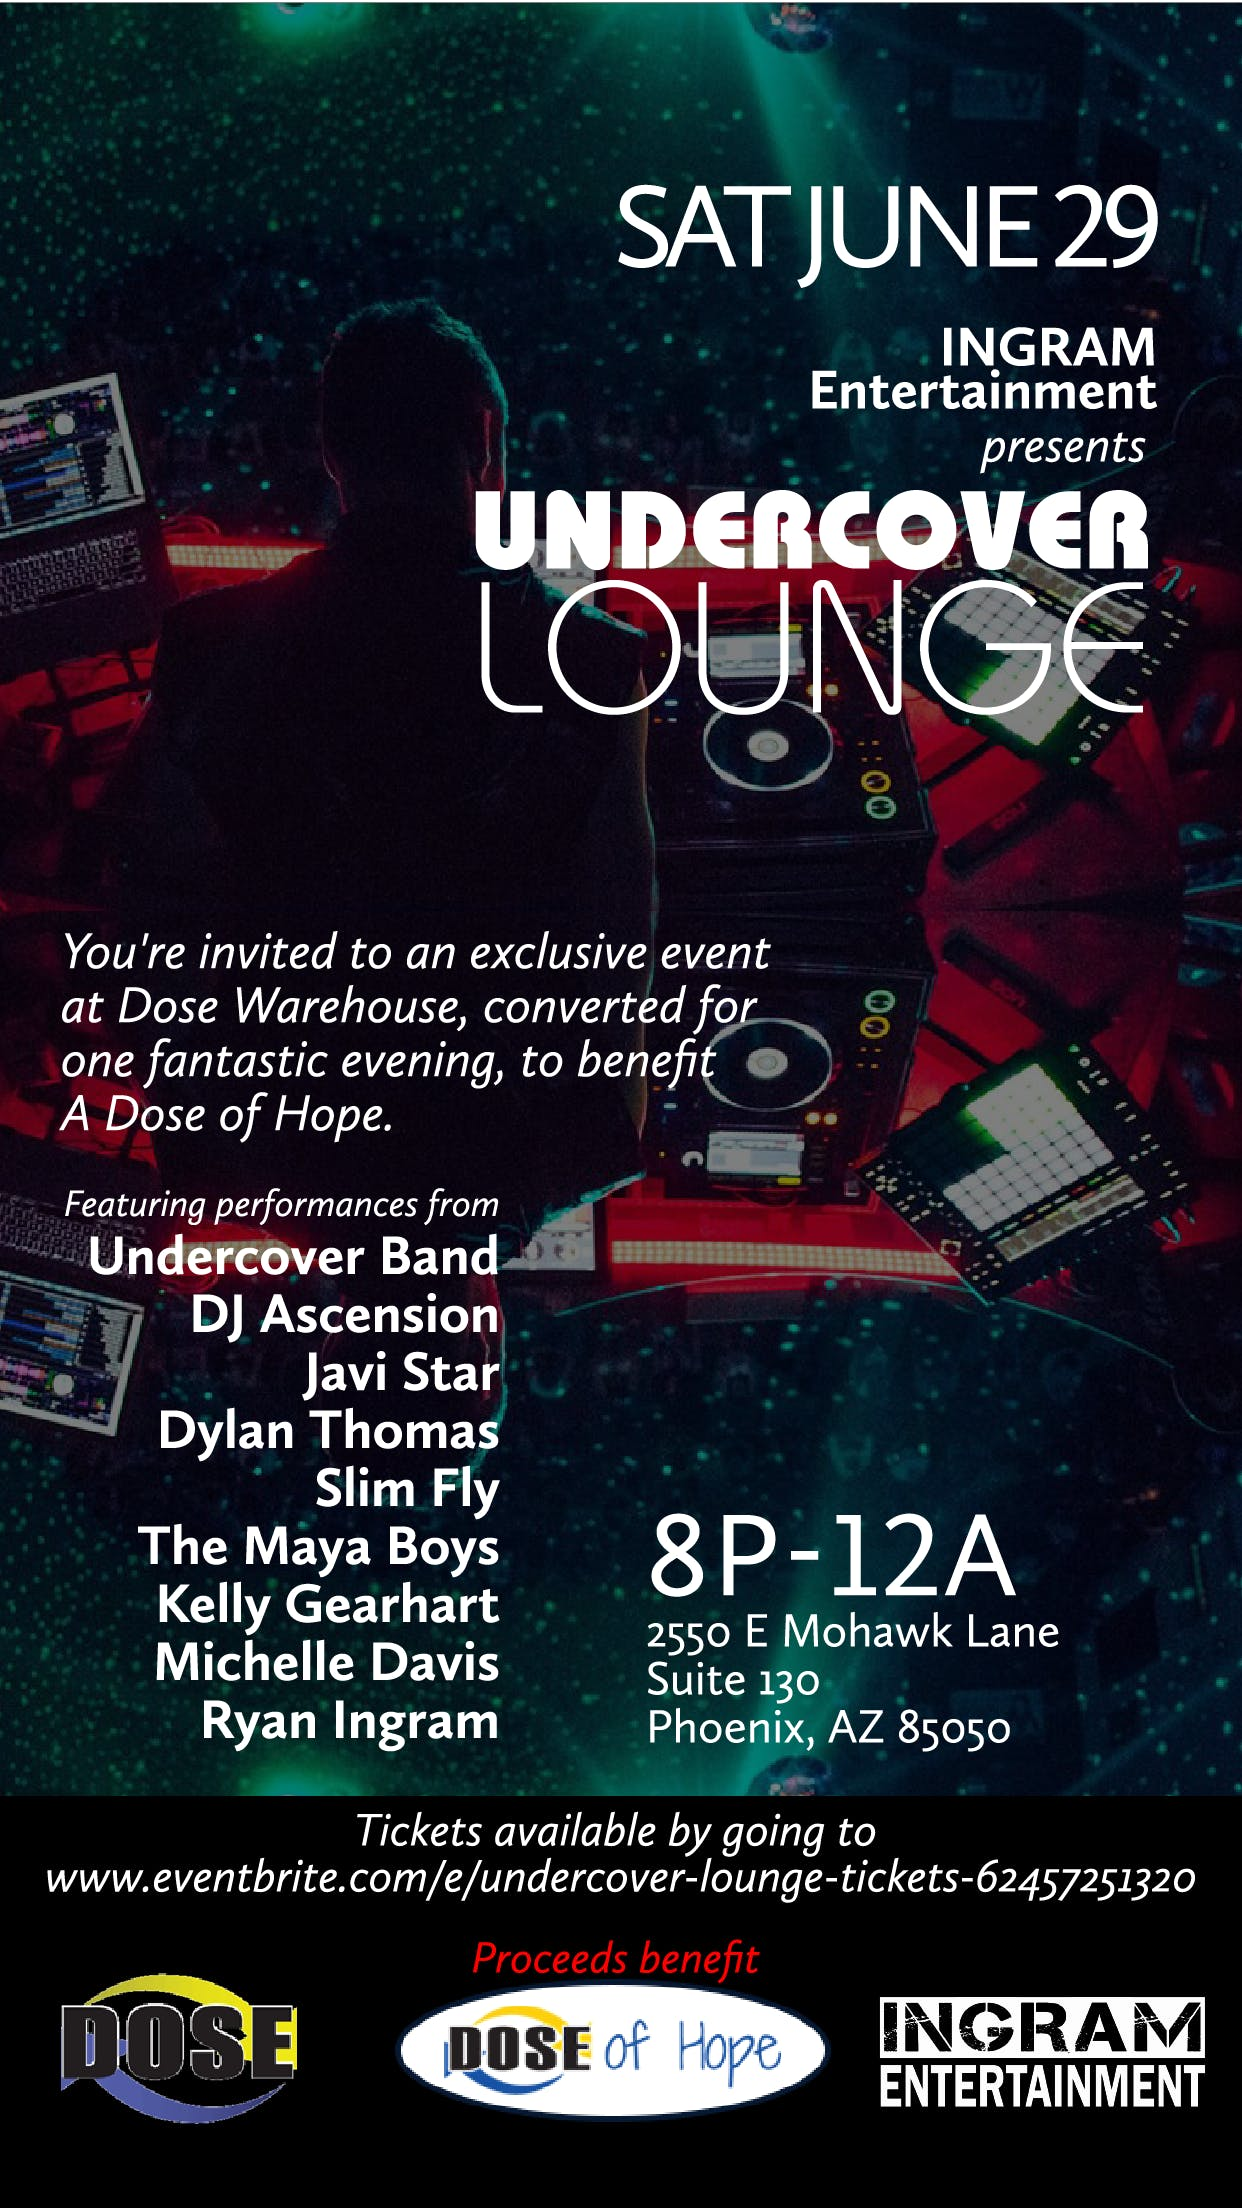 UNDERCOVER LOUNGE